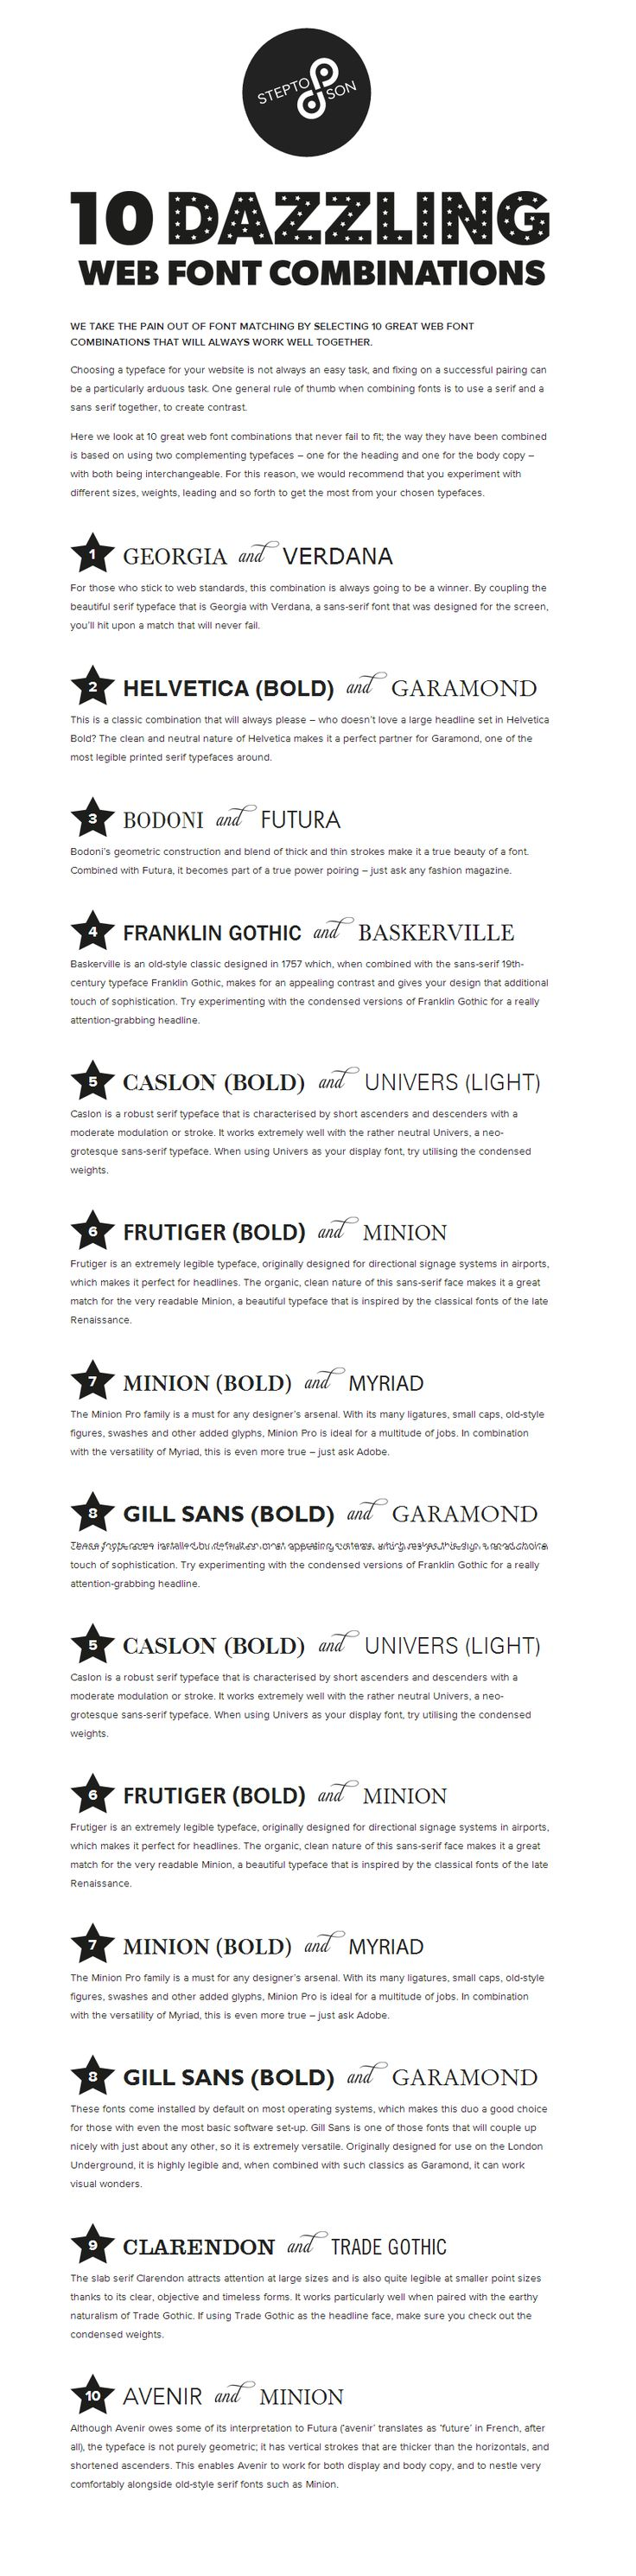 resume Font For A Resume best 20 resume fonts ideas on pinterest create a cv 10 great web font combinations